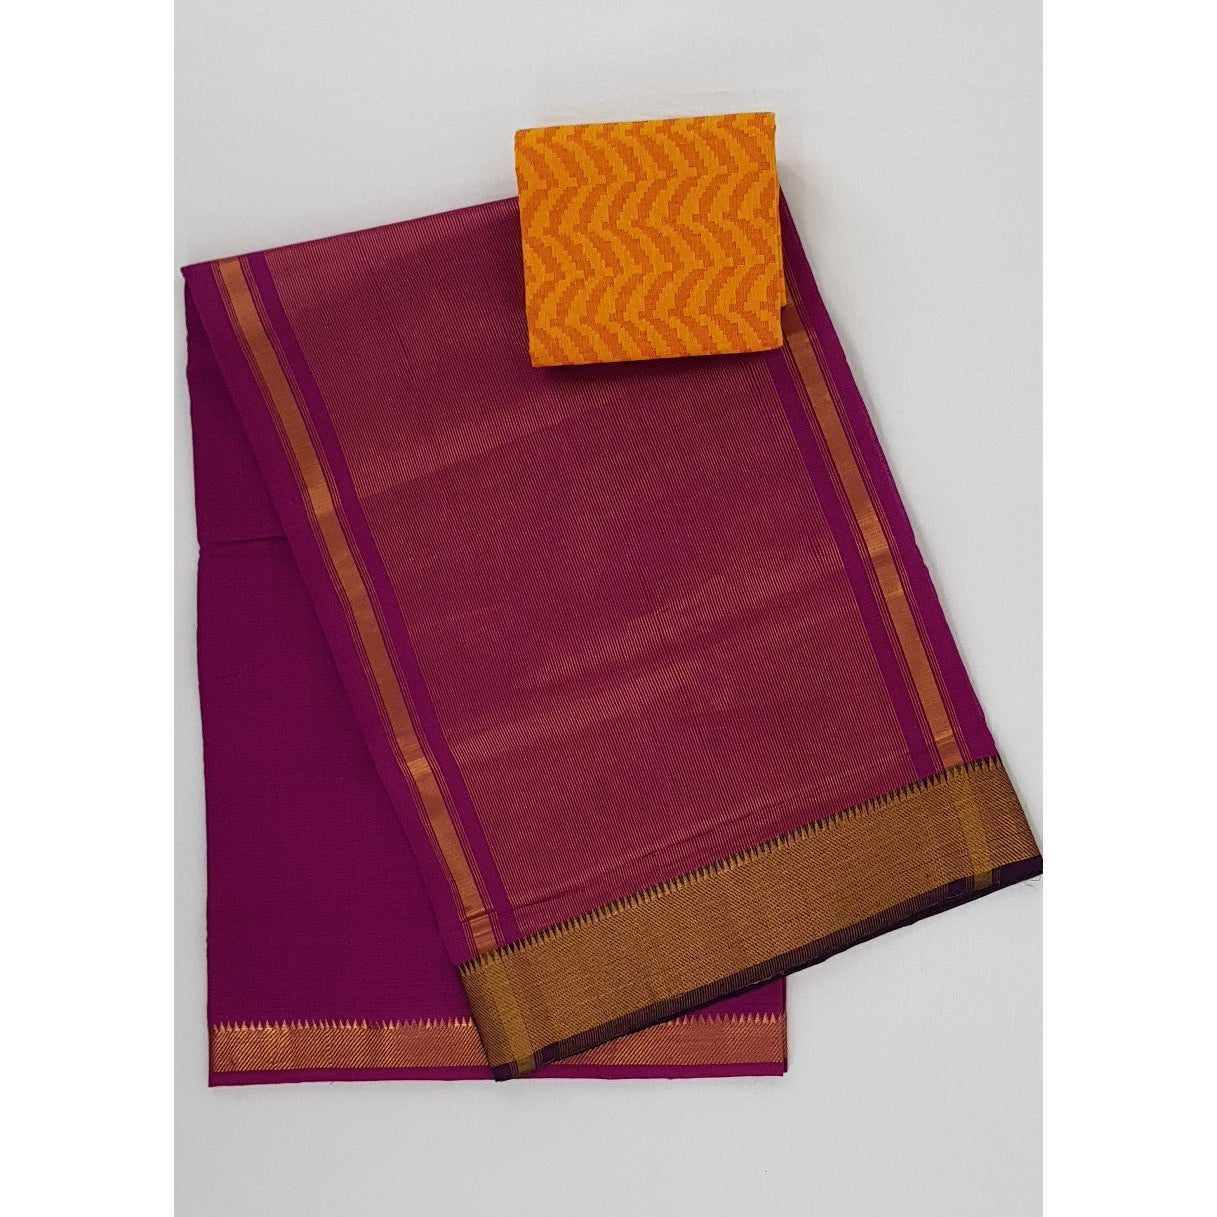 Magenta color Mangalagiri cotton saree with golden zari border - Vinshika